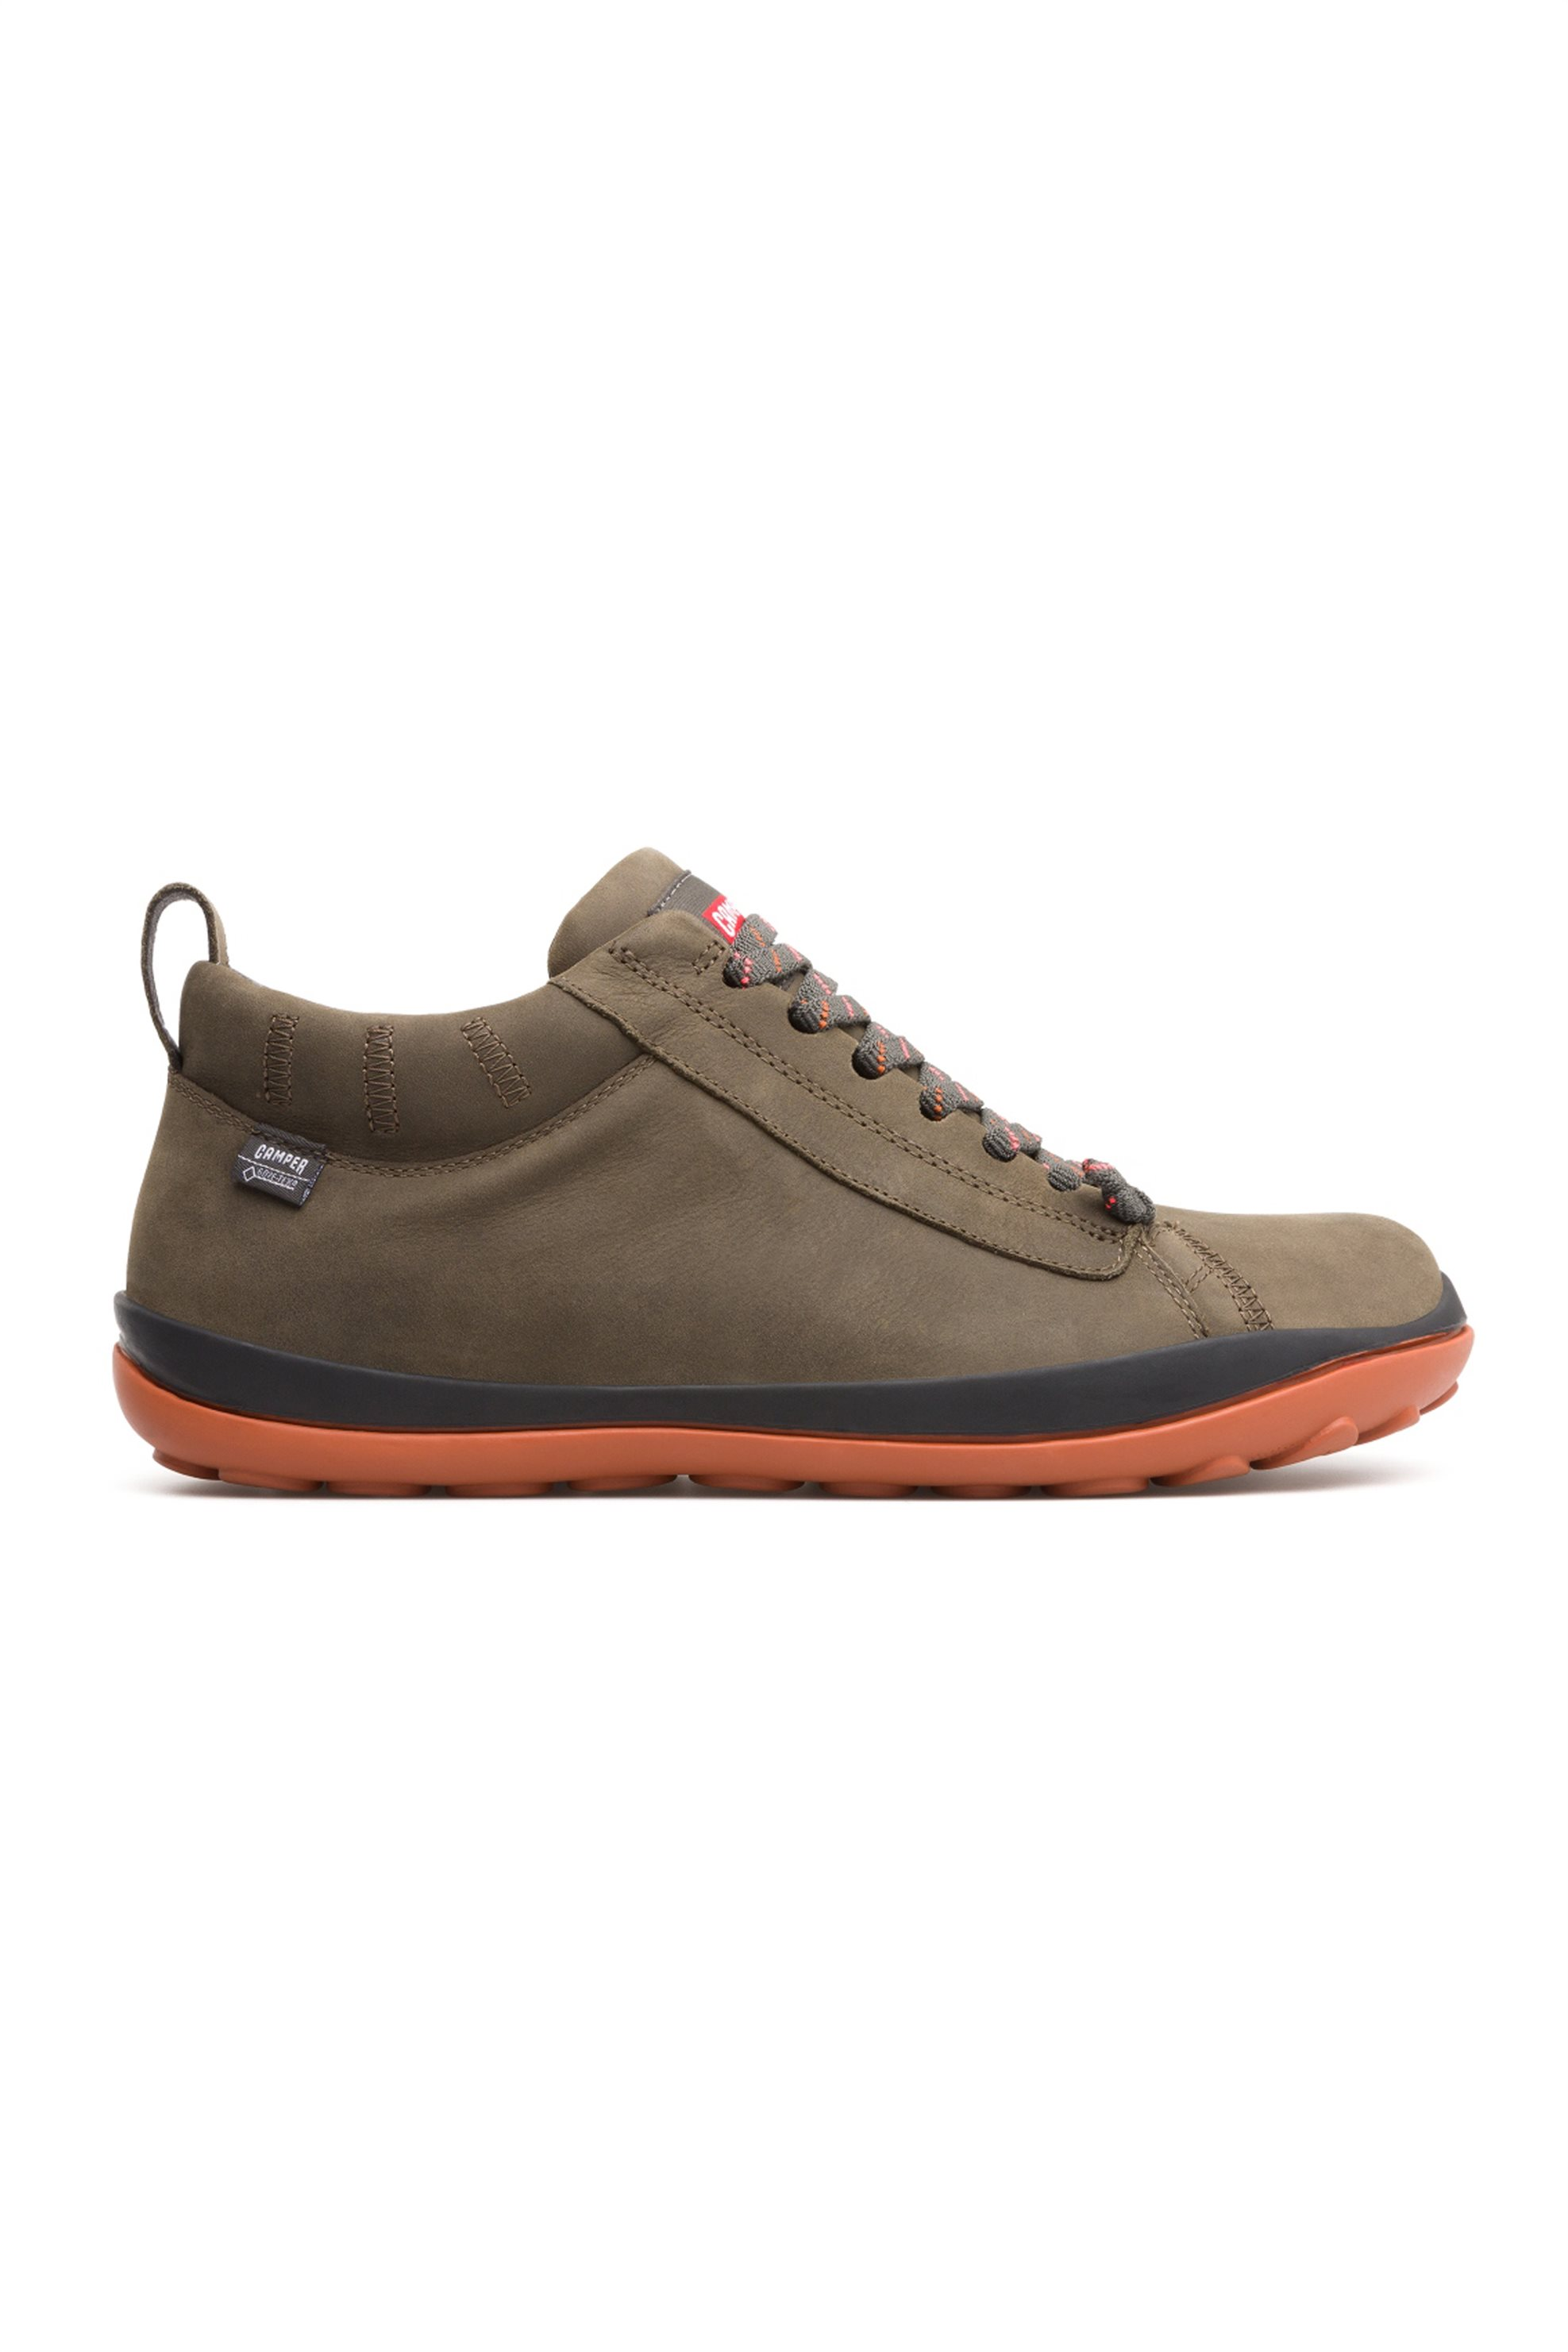 Camper ανδρικά παπούτσια σουέτ λαδί Gore-Tex® Peu Pista - 36544-067 - Λαδί ανδρασ   παπουτσια   trainers   sneakers